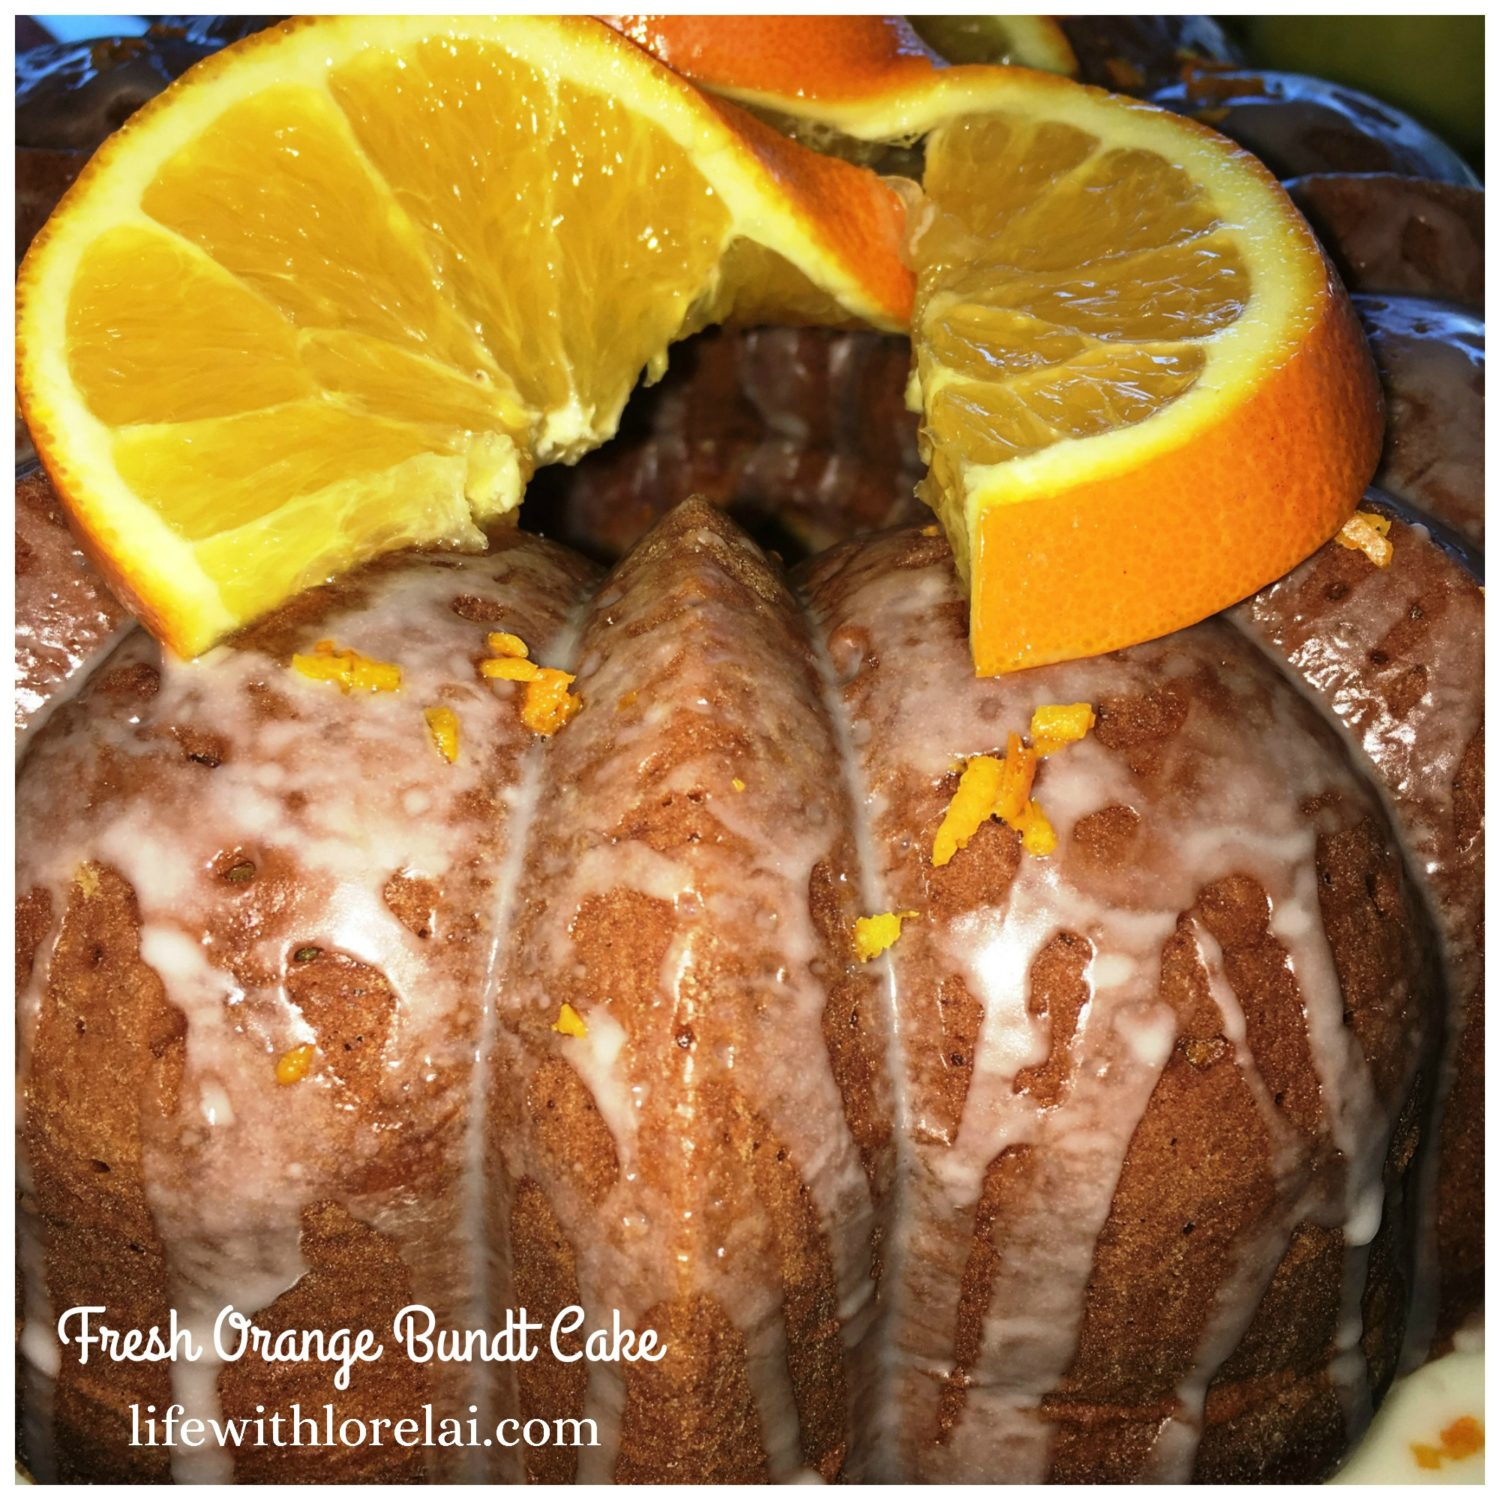 Fresh Orange Bundt Cake Recipe from Life With Lorelai